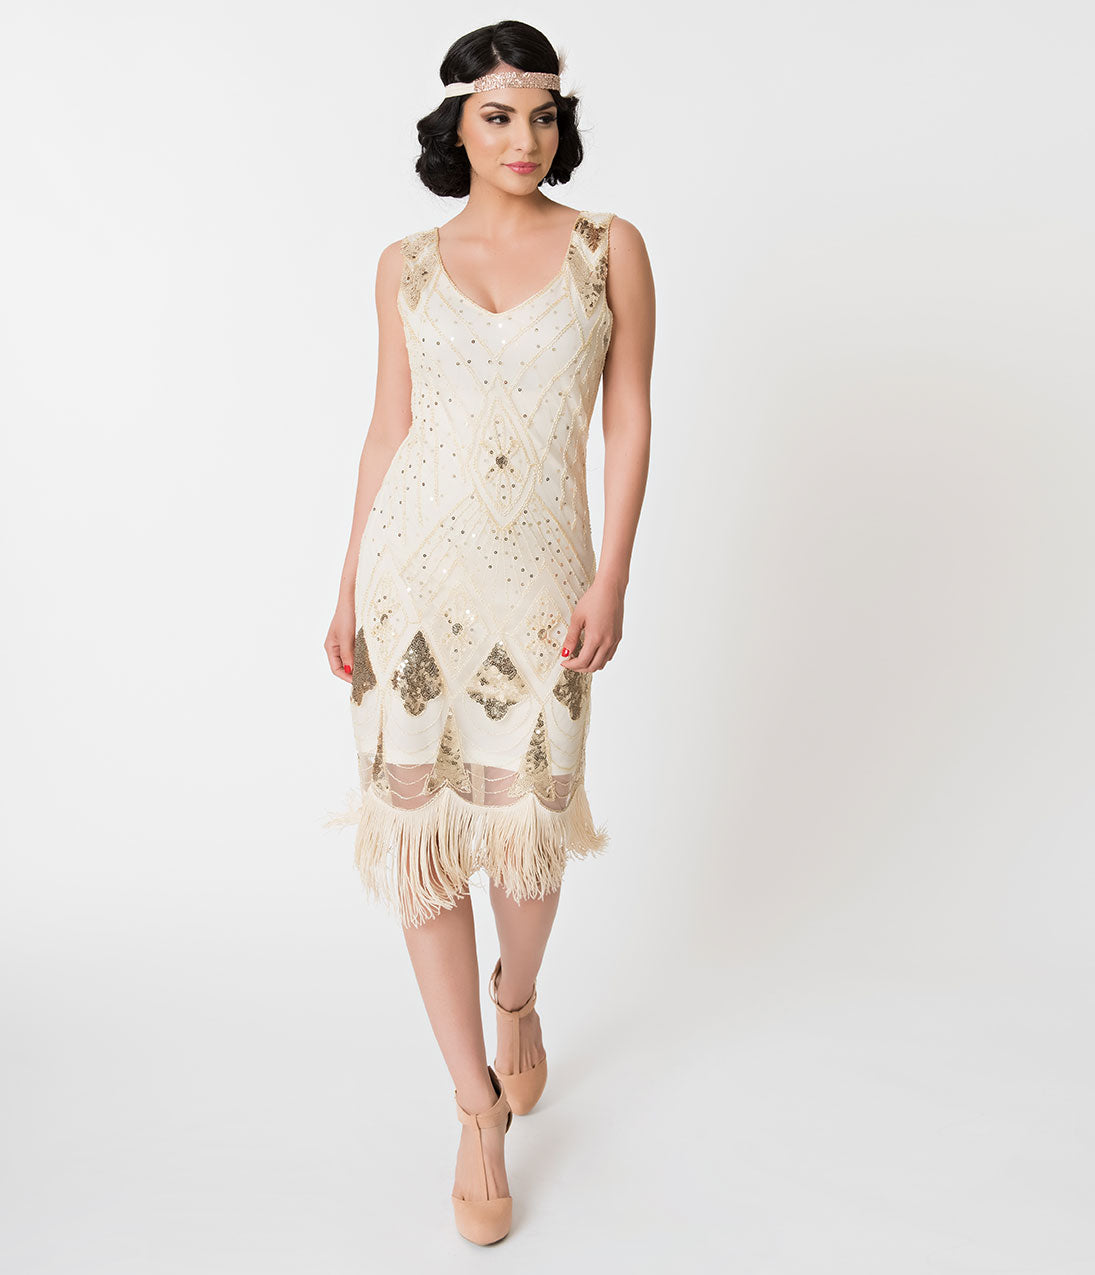 Roaring 20s Costumes- Flapper Costumes, Gangster Costumes Unique Vintage Ivory  Gold Sequin Lina Fringe Flapper Dress $36.00 AT vintagedancer.com